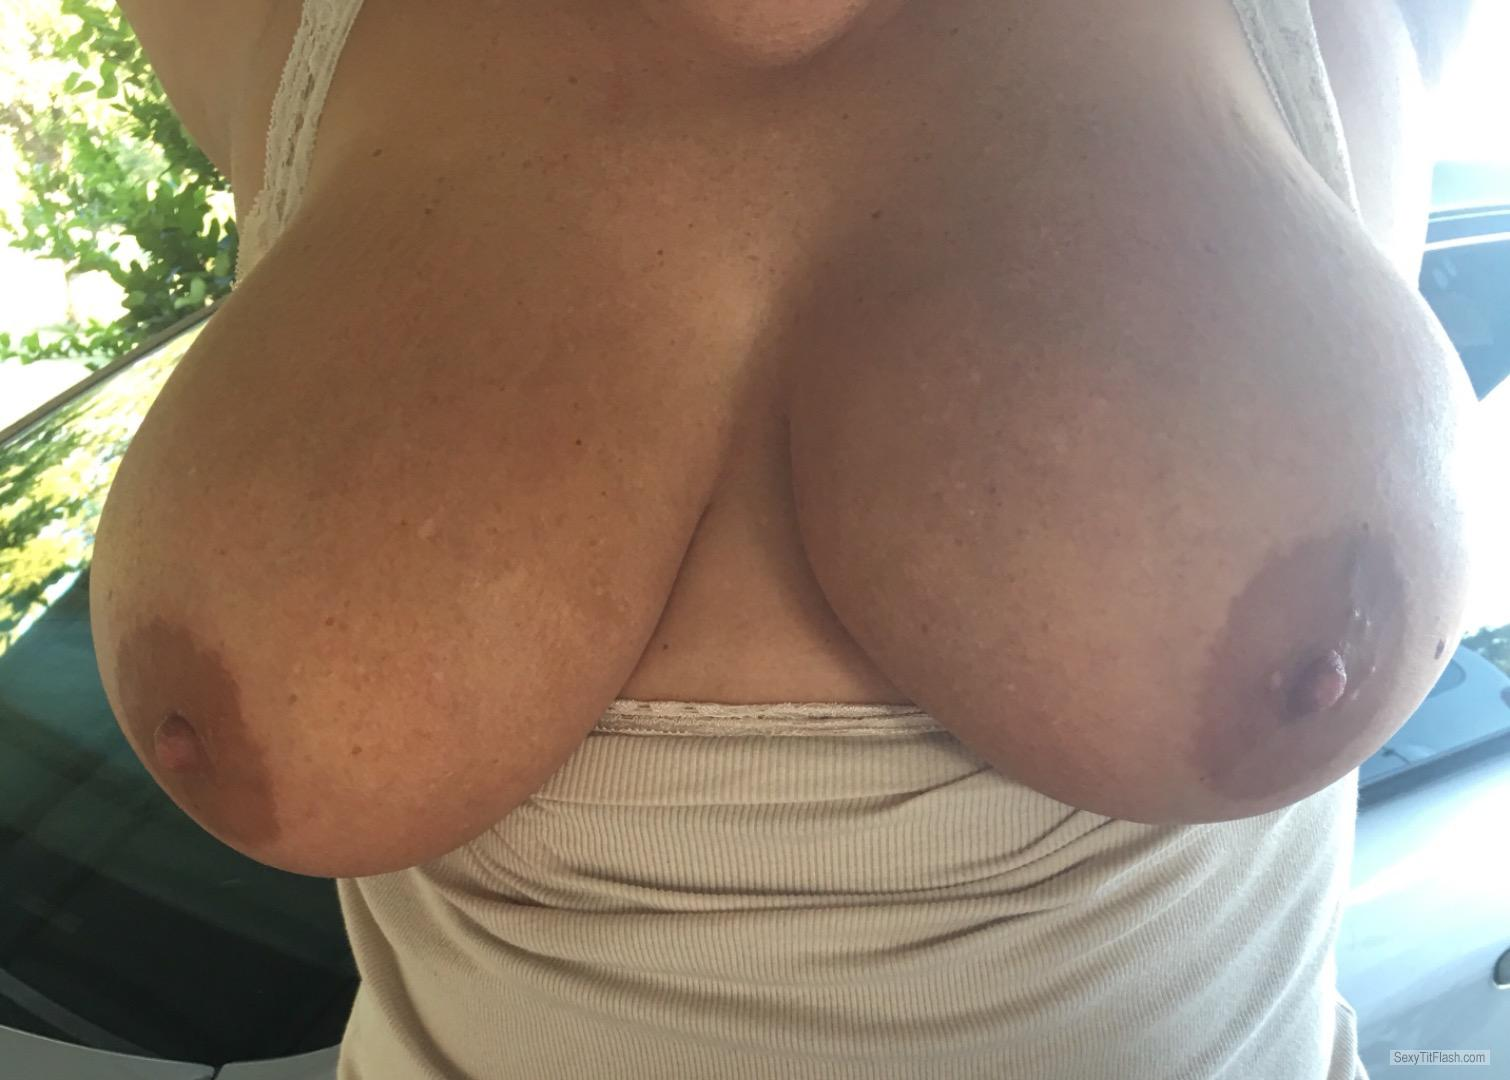 Tit Flash: My Very Big Tits - Topless Bigtits71 from United States